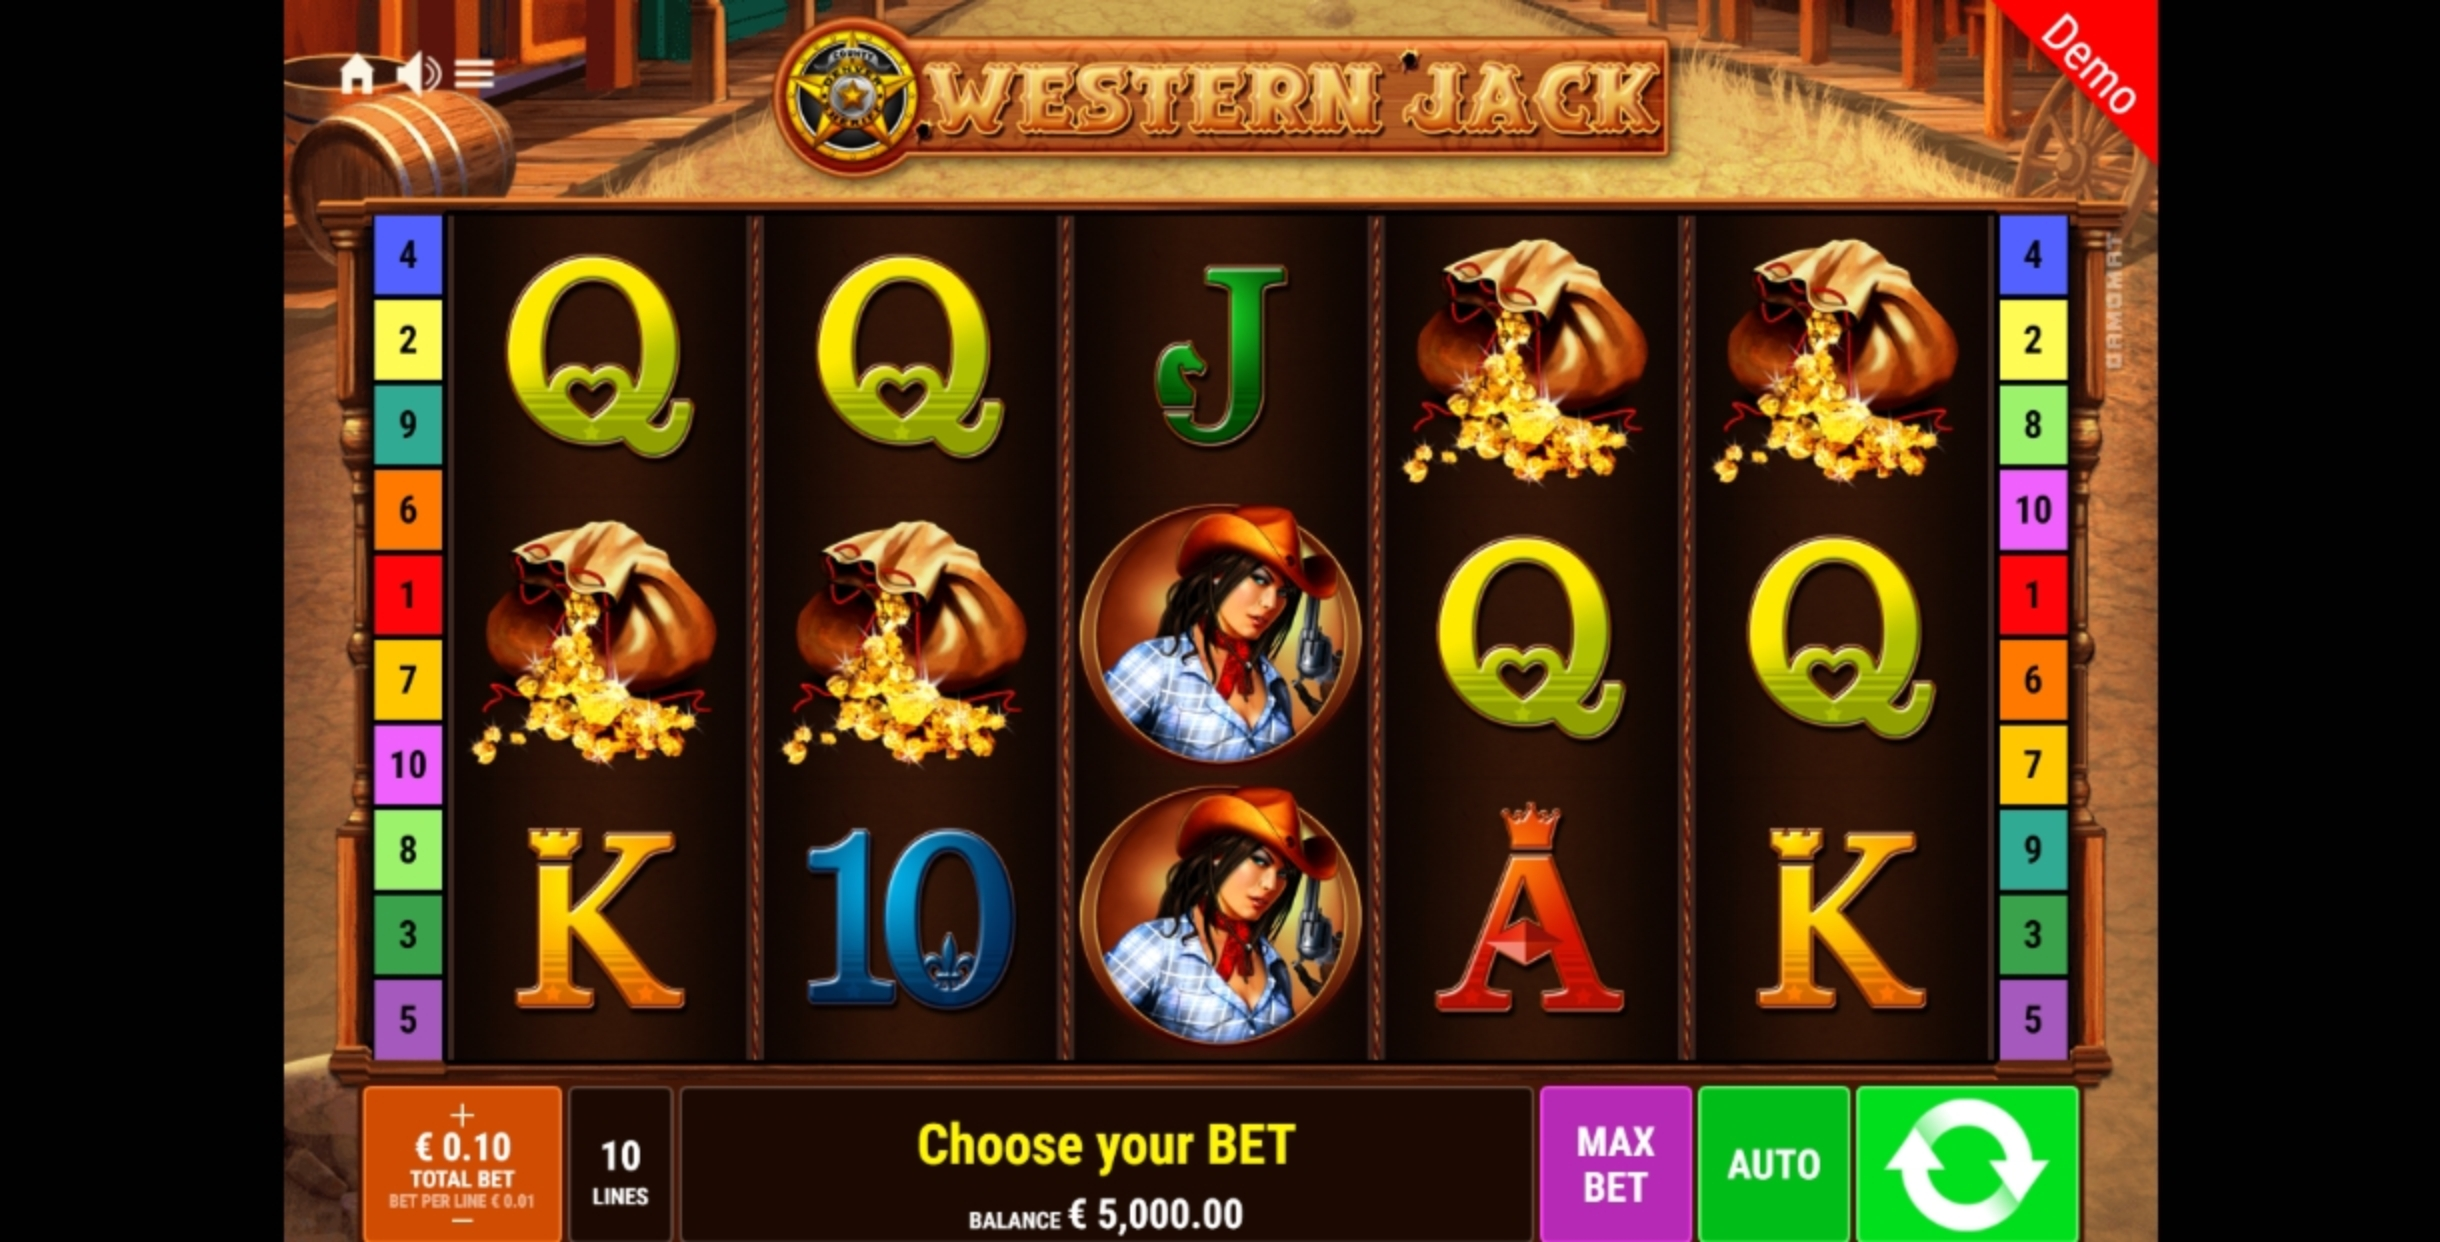 Reels in Western Jack Slot Game by Gamomat